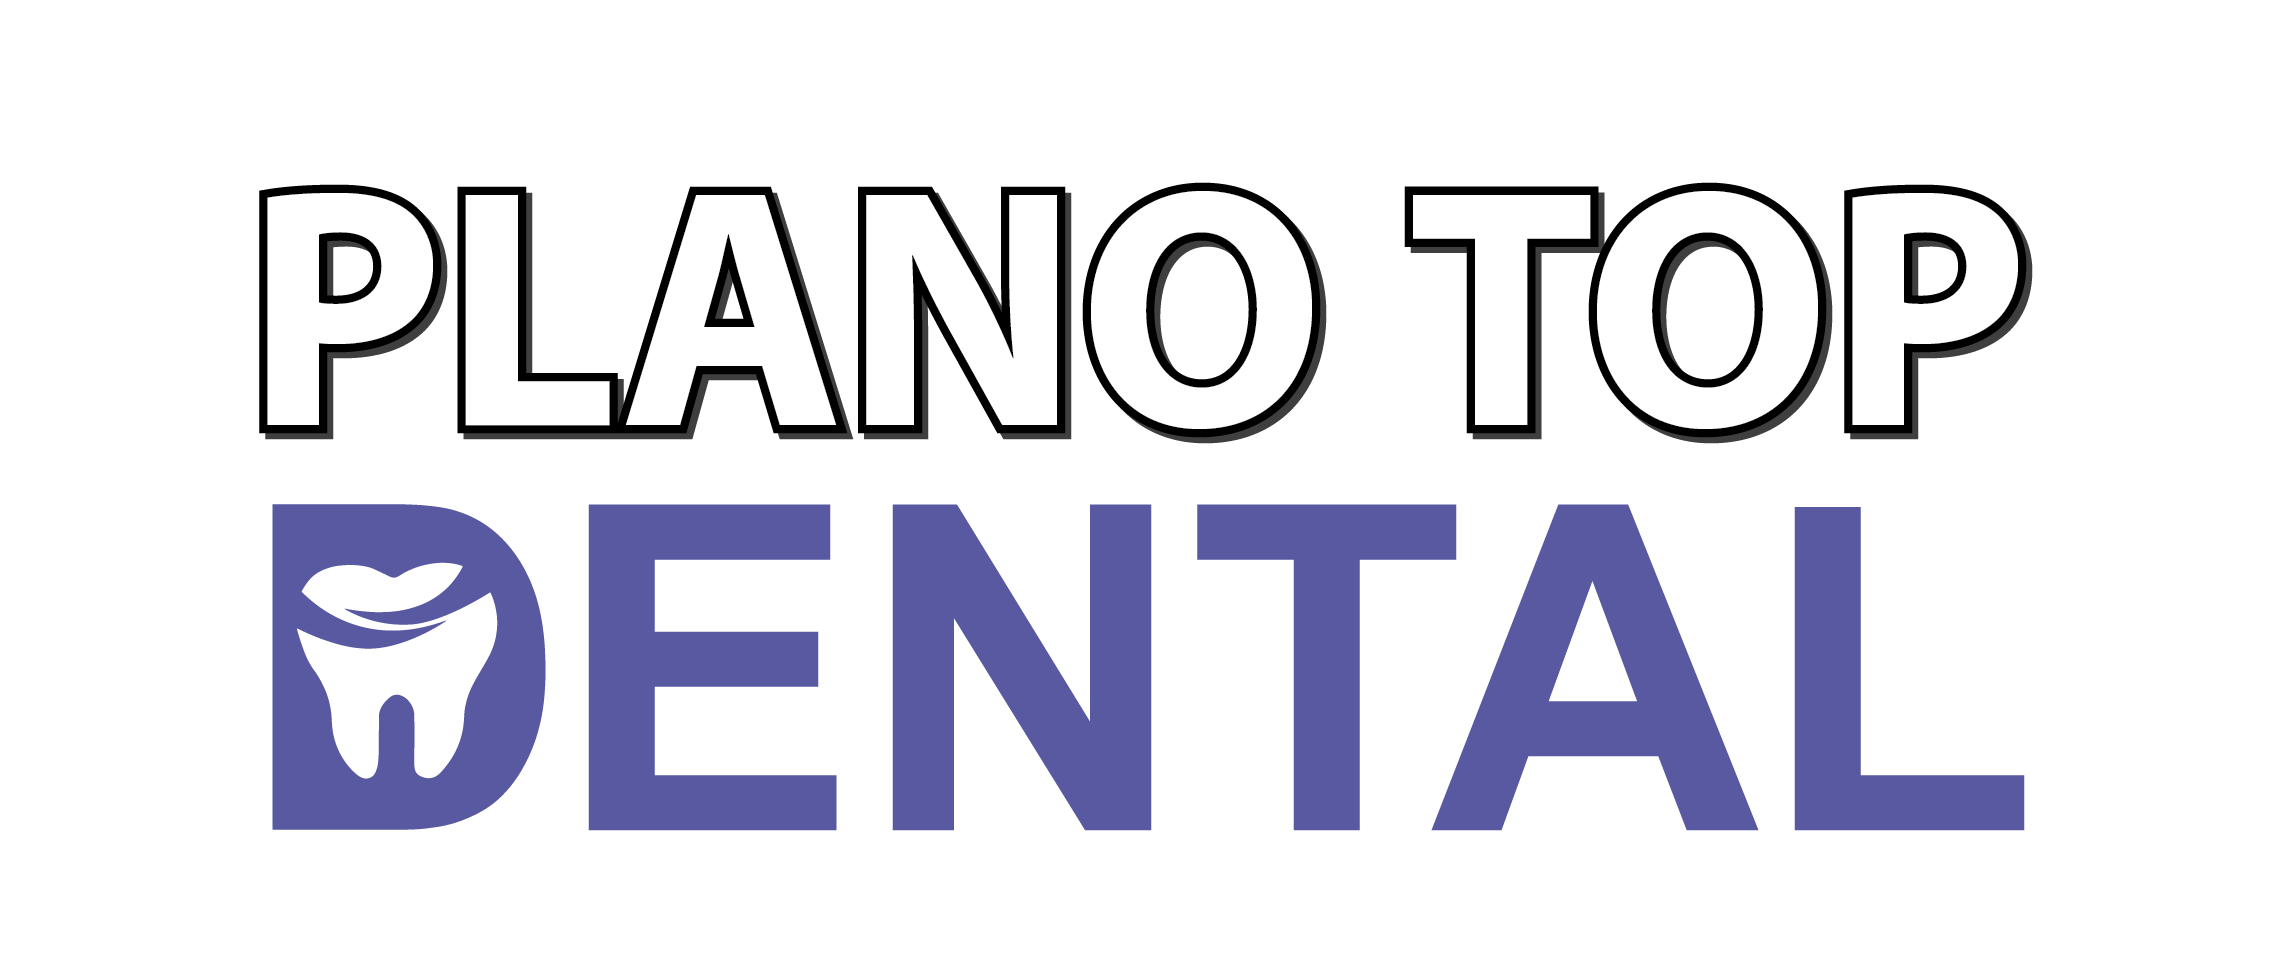 Plano Top Dental